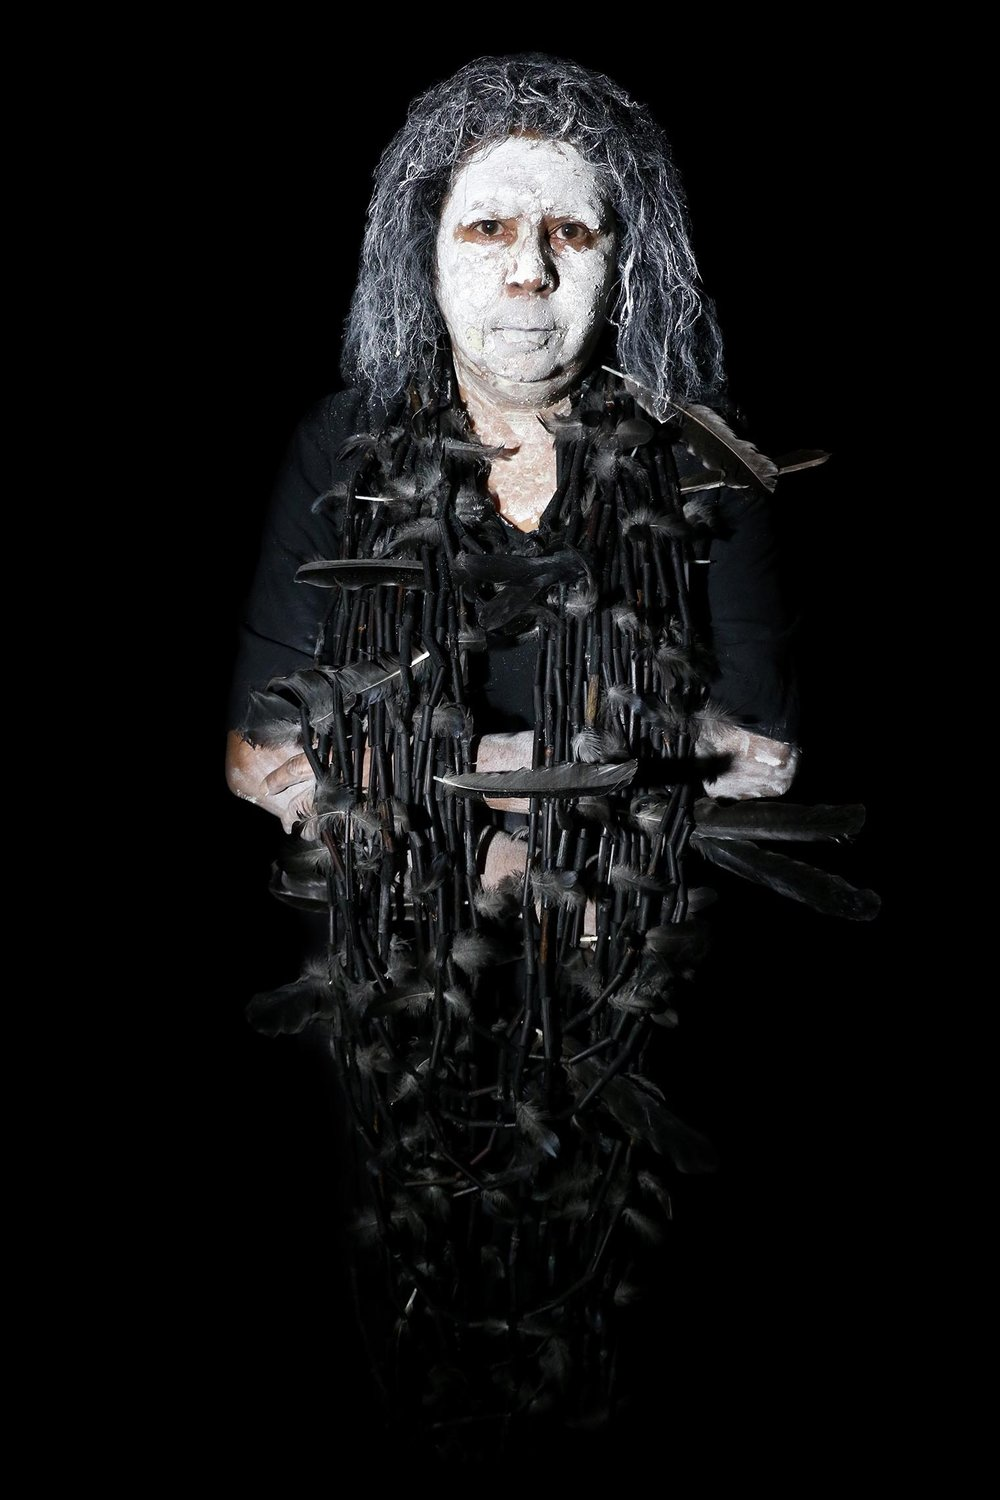 Maree Clarke, Self Portrait with Mourning Necklace,   2017, Digital image on dibond,Courtesy of the artist and Vivien Anderson Gallery, Melbourne.